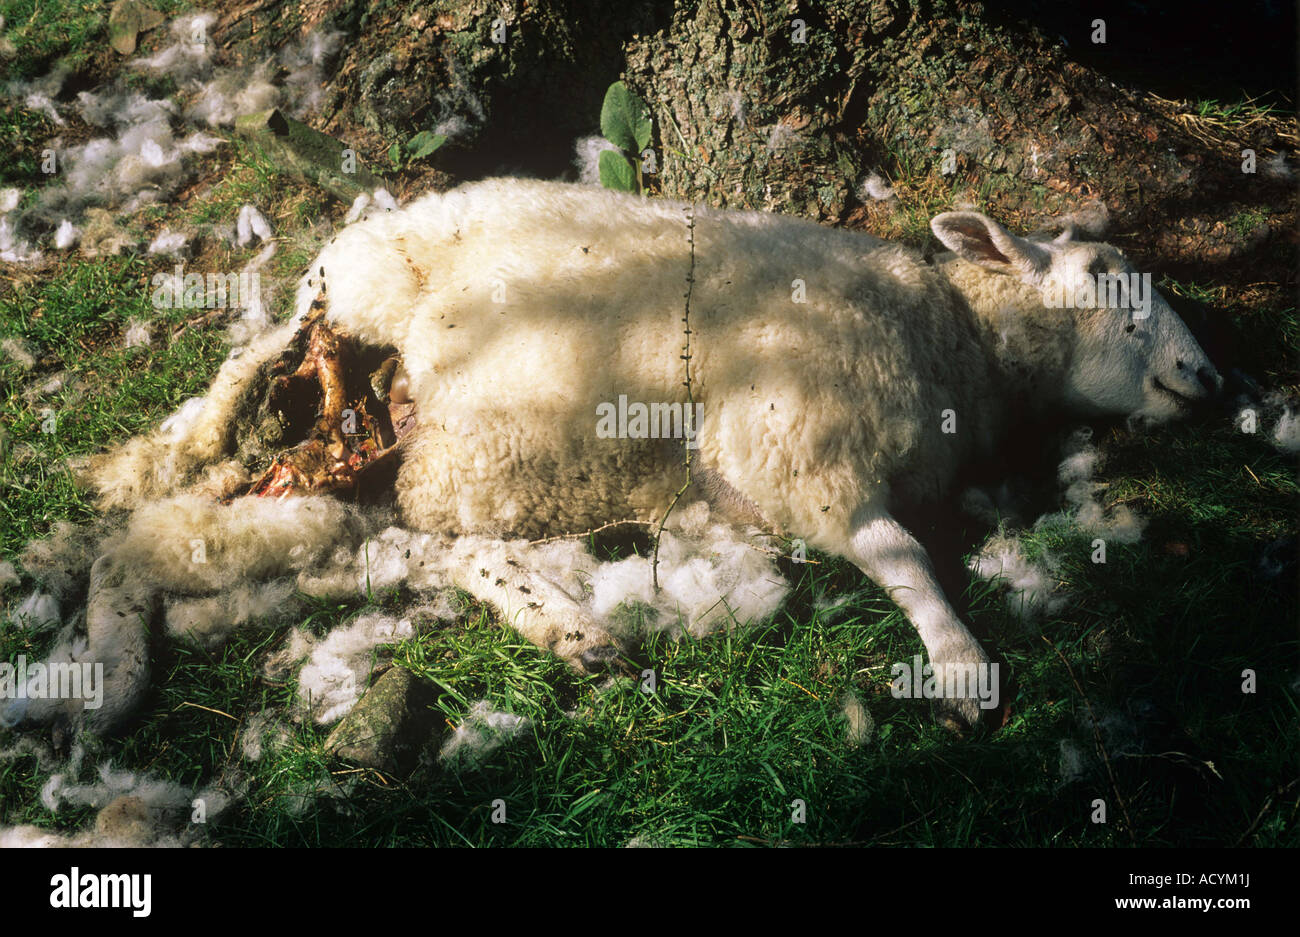 Sheep killed by a dog in the Lake District Cumbria Stock Photo